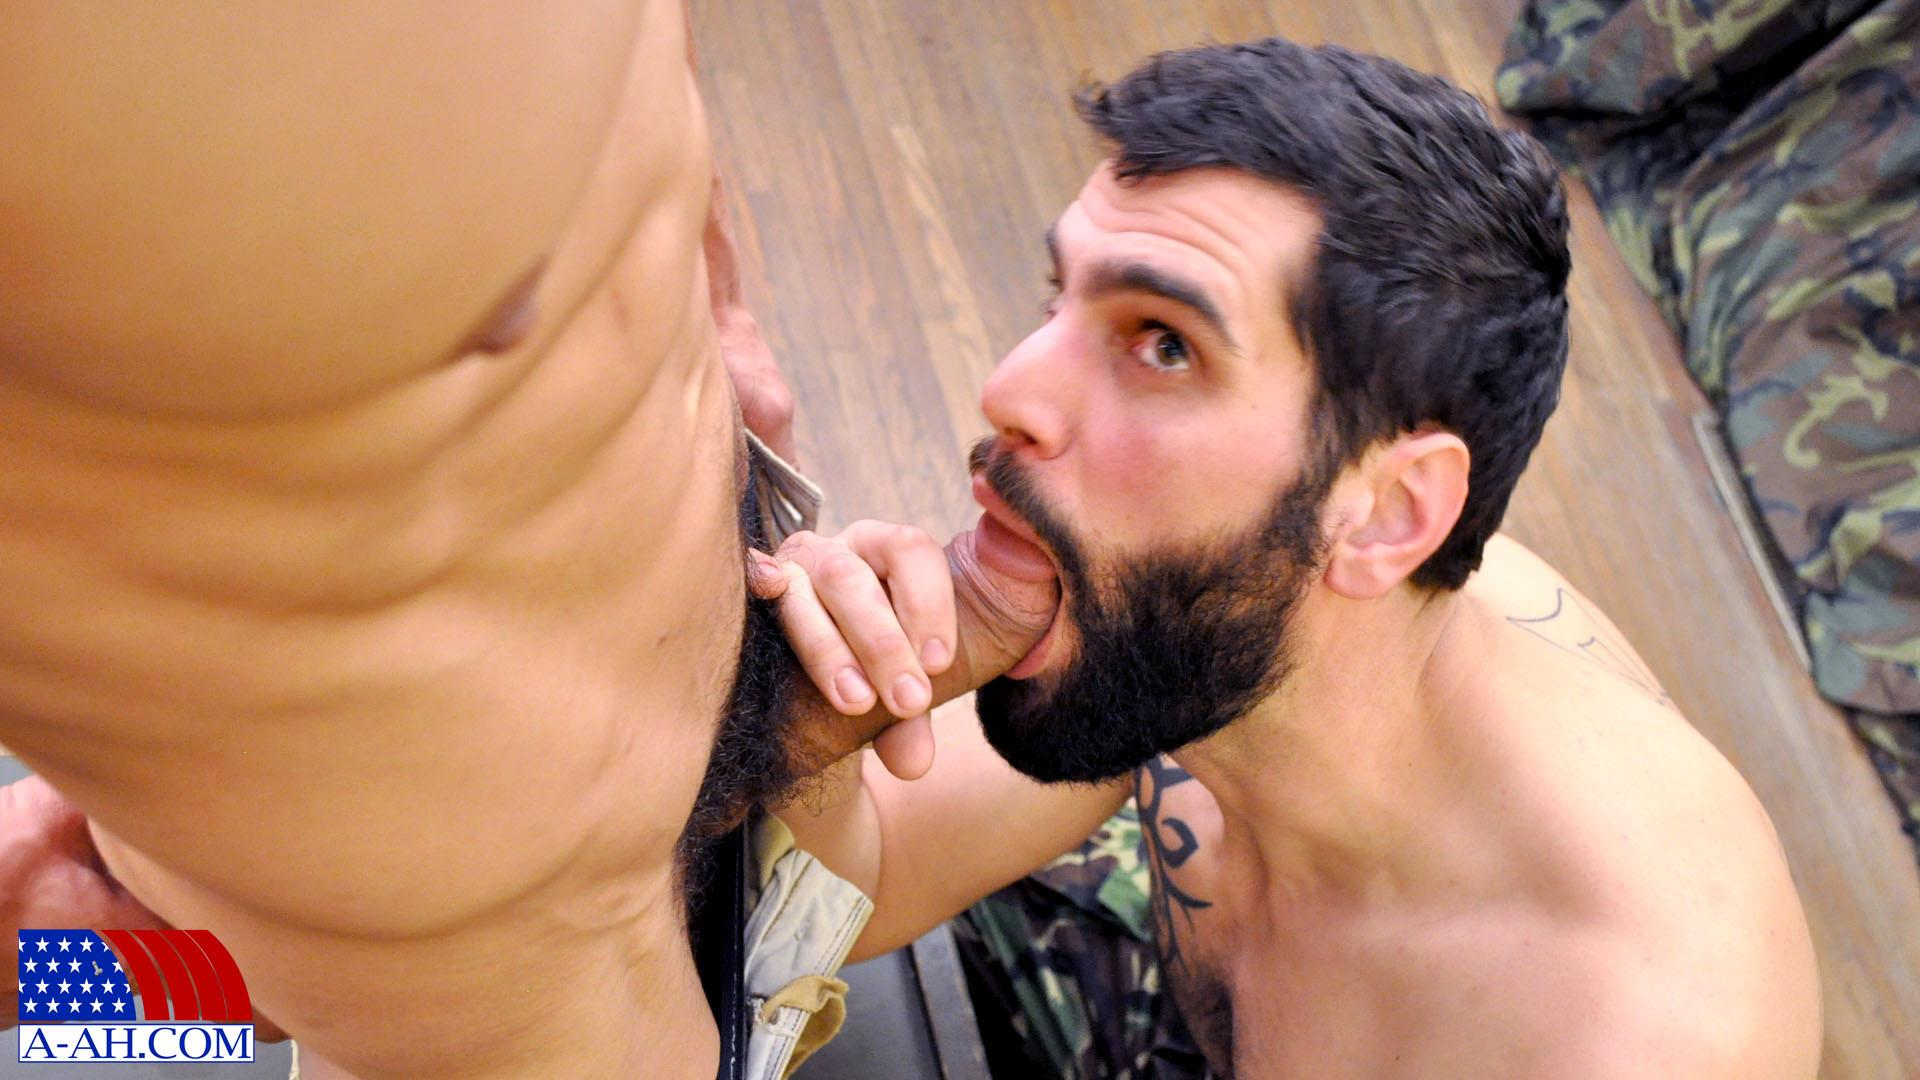 All American Heroes Petty Officer Eddy Fucks Private Antonio Big Uncut Cocks Amateur Gay Porn 05 Amateur Military Guys With Big Uncut Cocks Fucking Hard